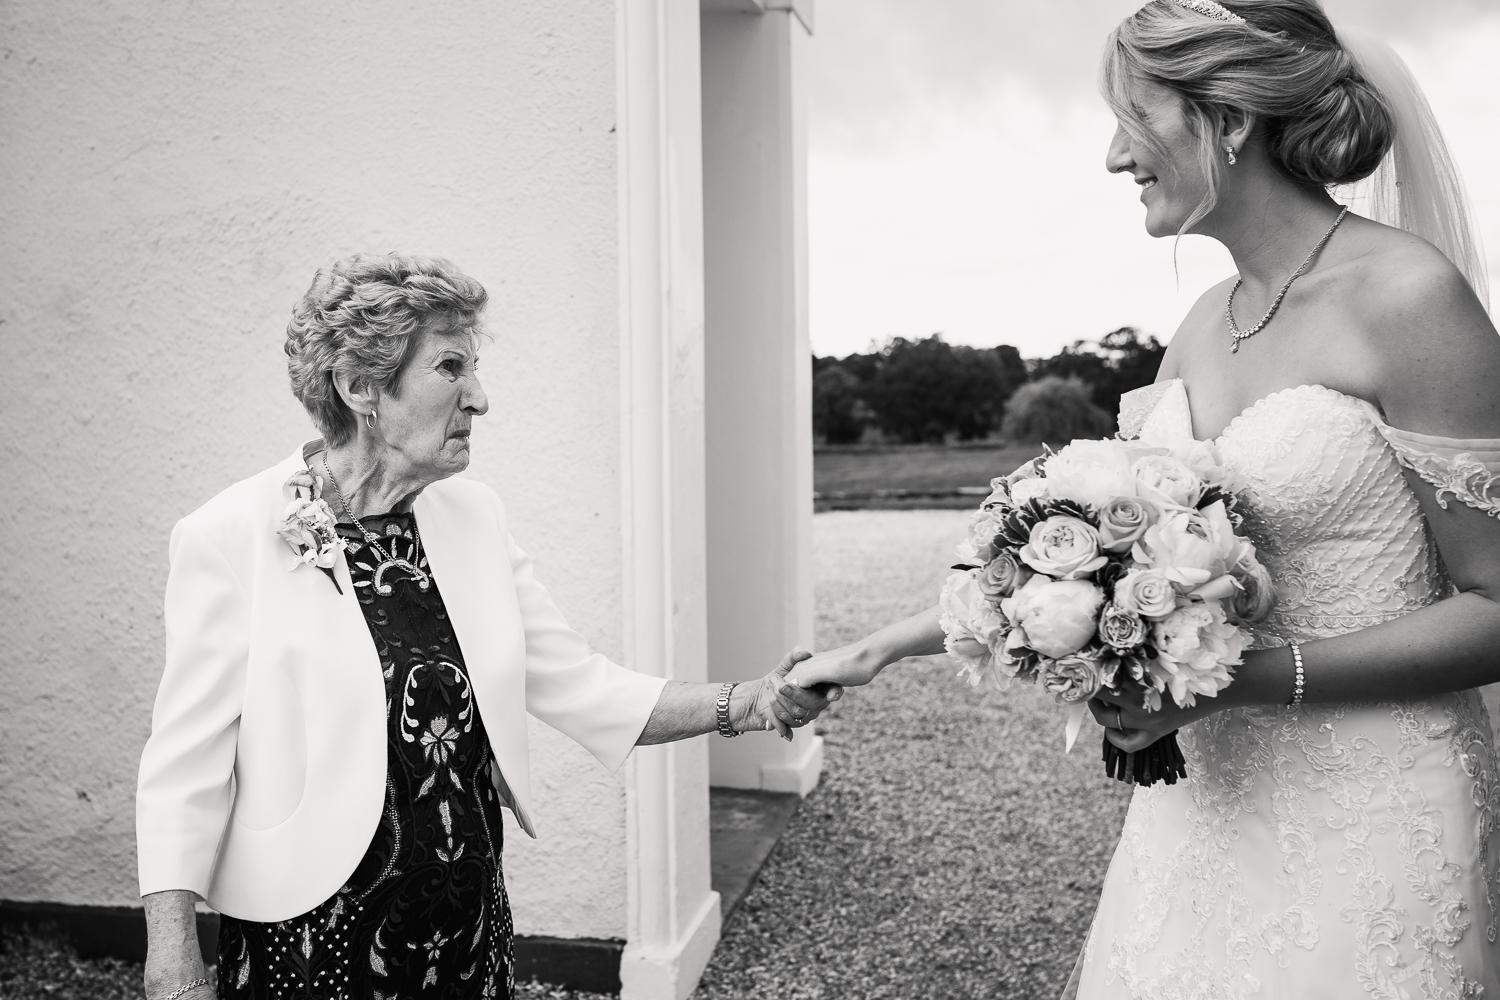 NATURAL_WEDDING_PHOTOGRAPHY_KATHRYN_CALRKE_MCLEOD-58.jpg